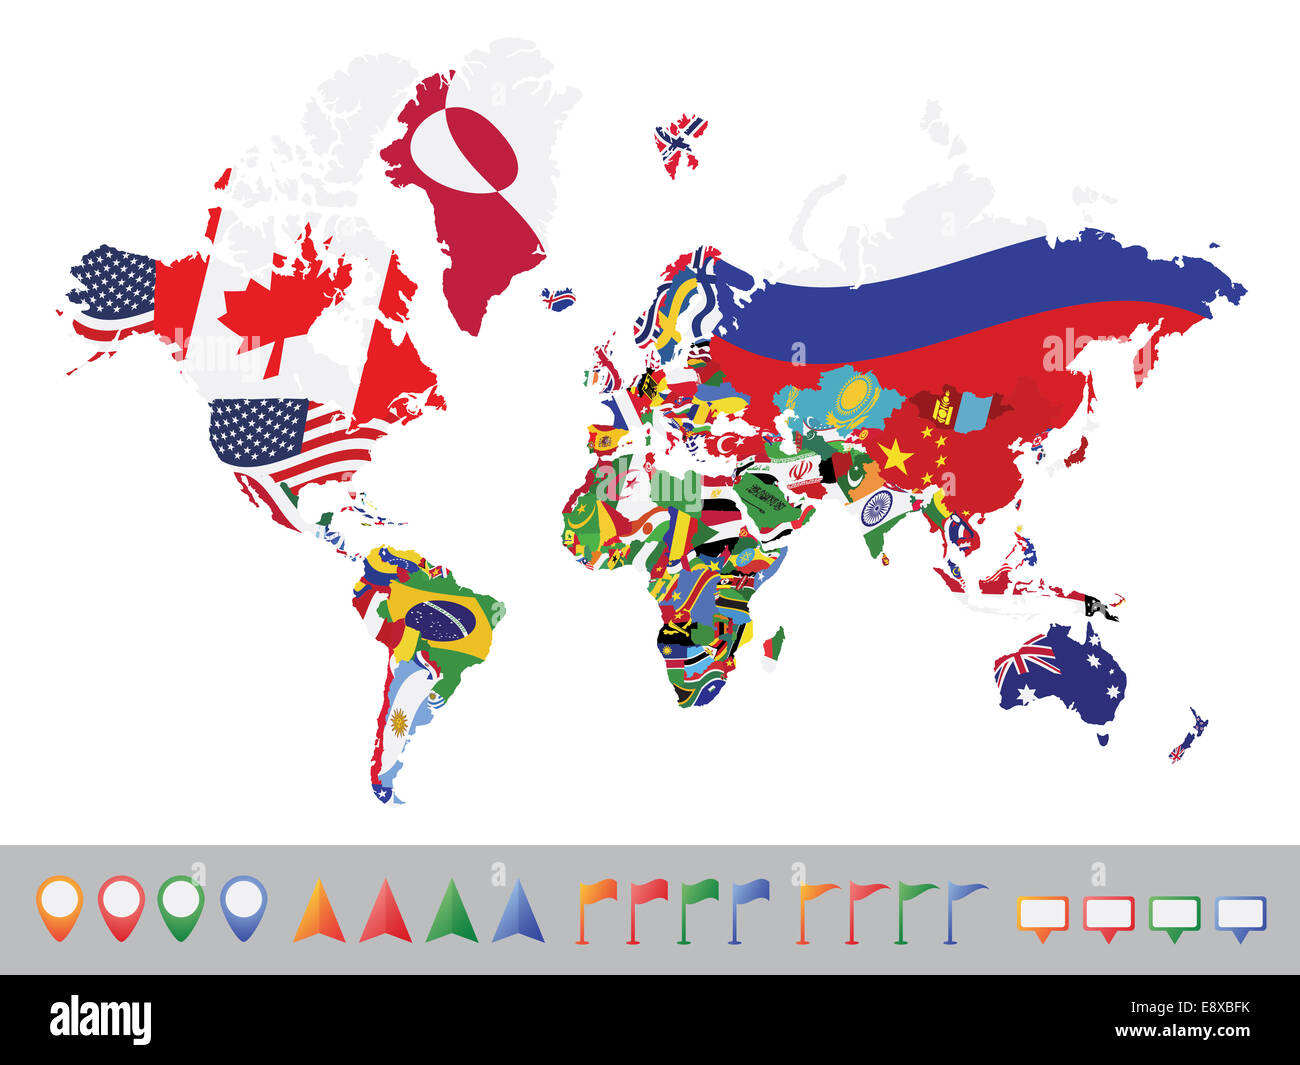 World map with flag - Stock Image